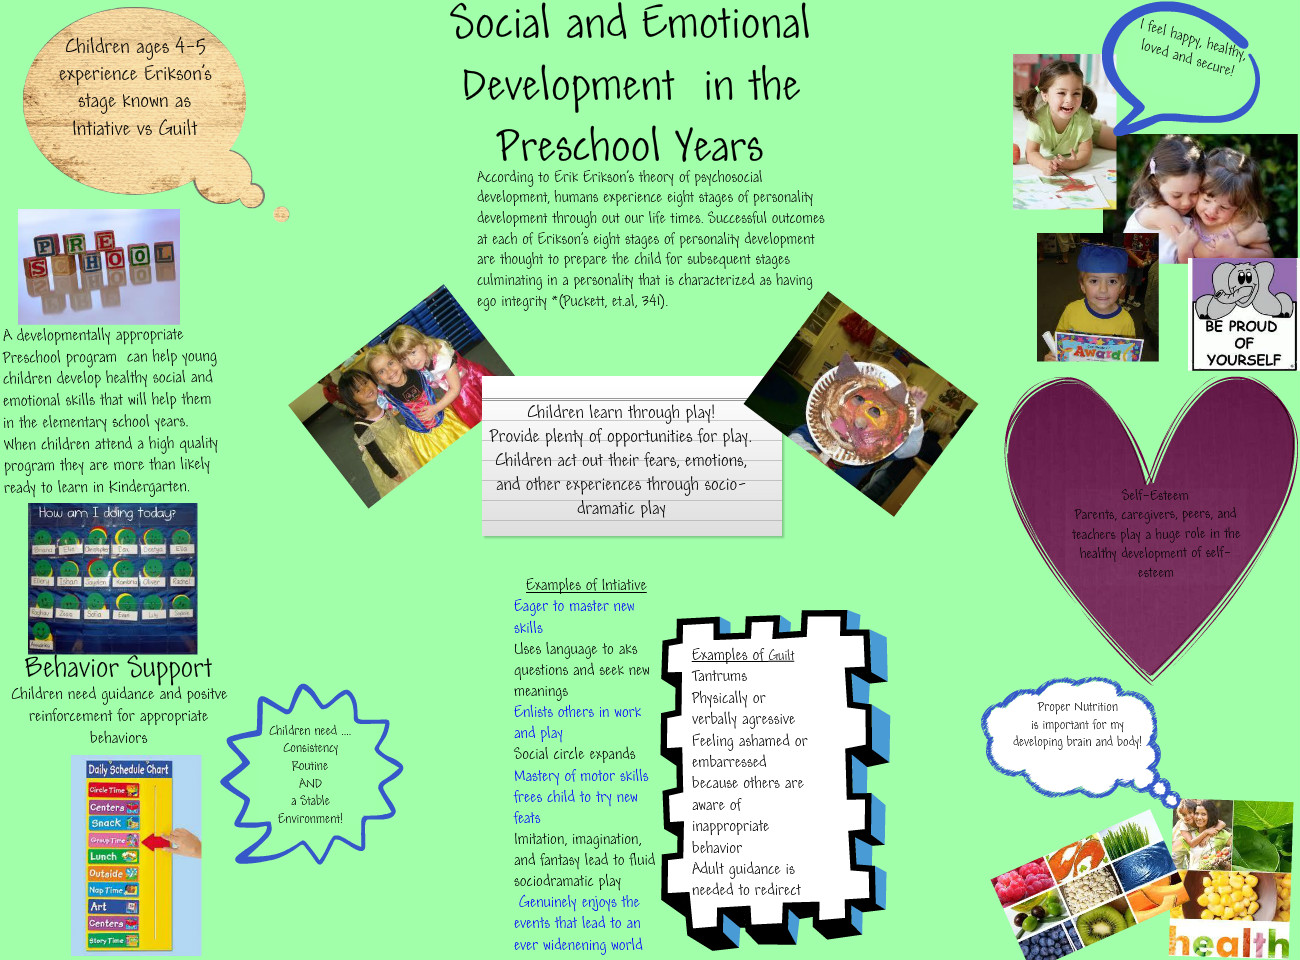 mental and emotional development Early childhood social and emotional development and mental health refers to the development of social, emotional, and behavioral skills in children birth through early school these skills.